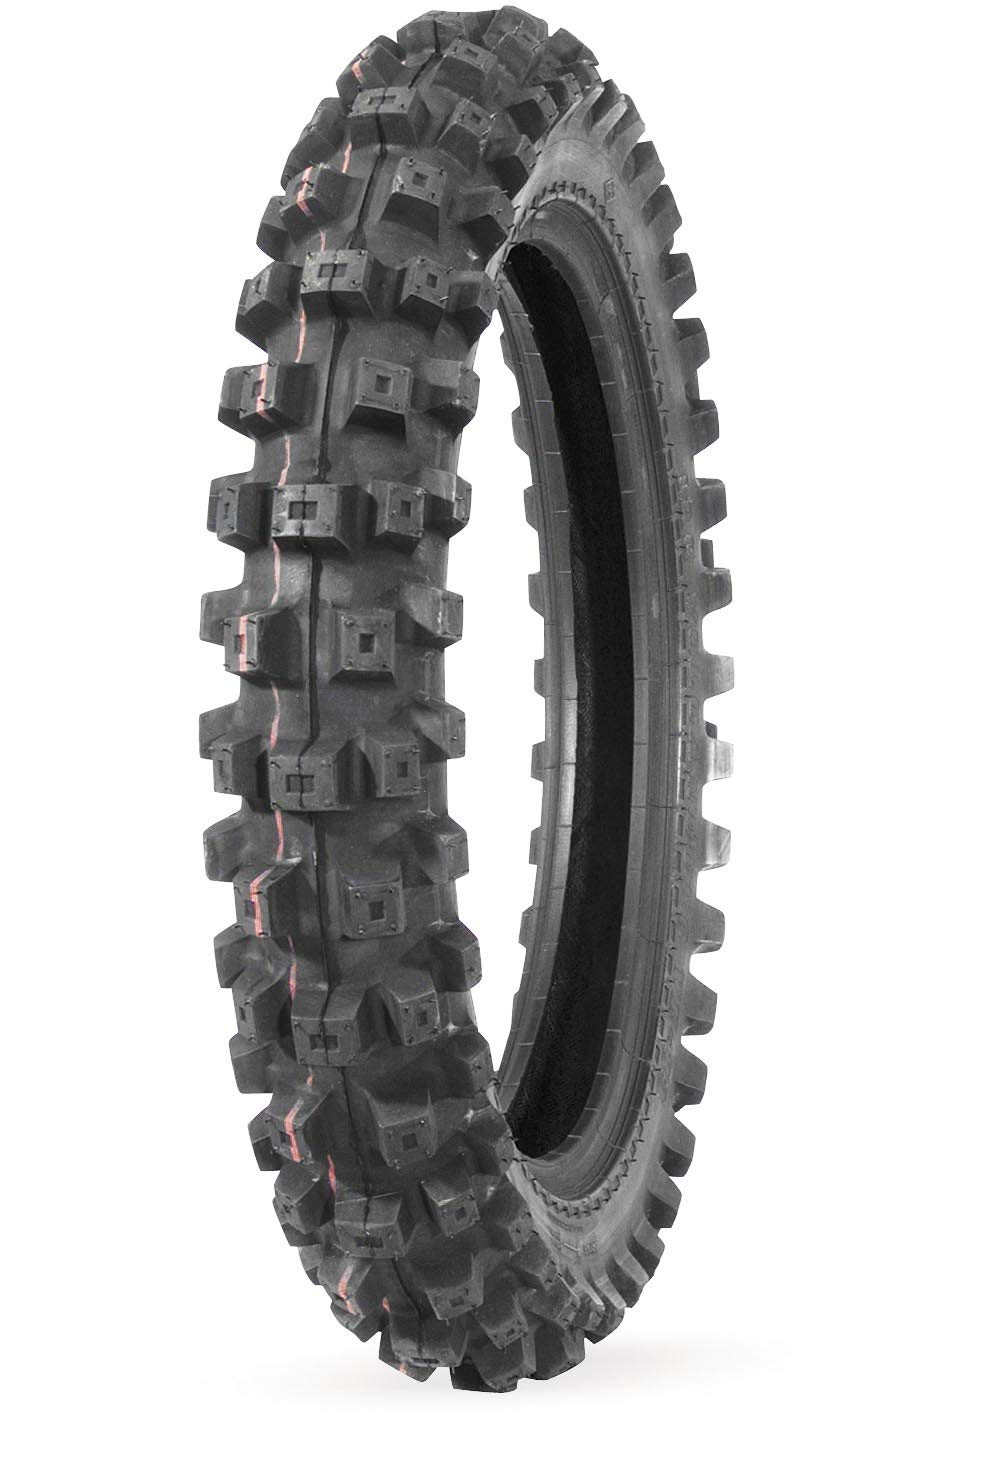 IRC VE-33 VOLCANDURO INTERMEDIATE MX TIRE REAR 5.10-17 LEPAZA75243